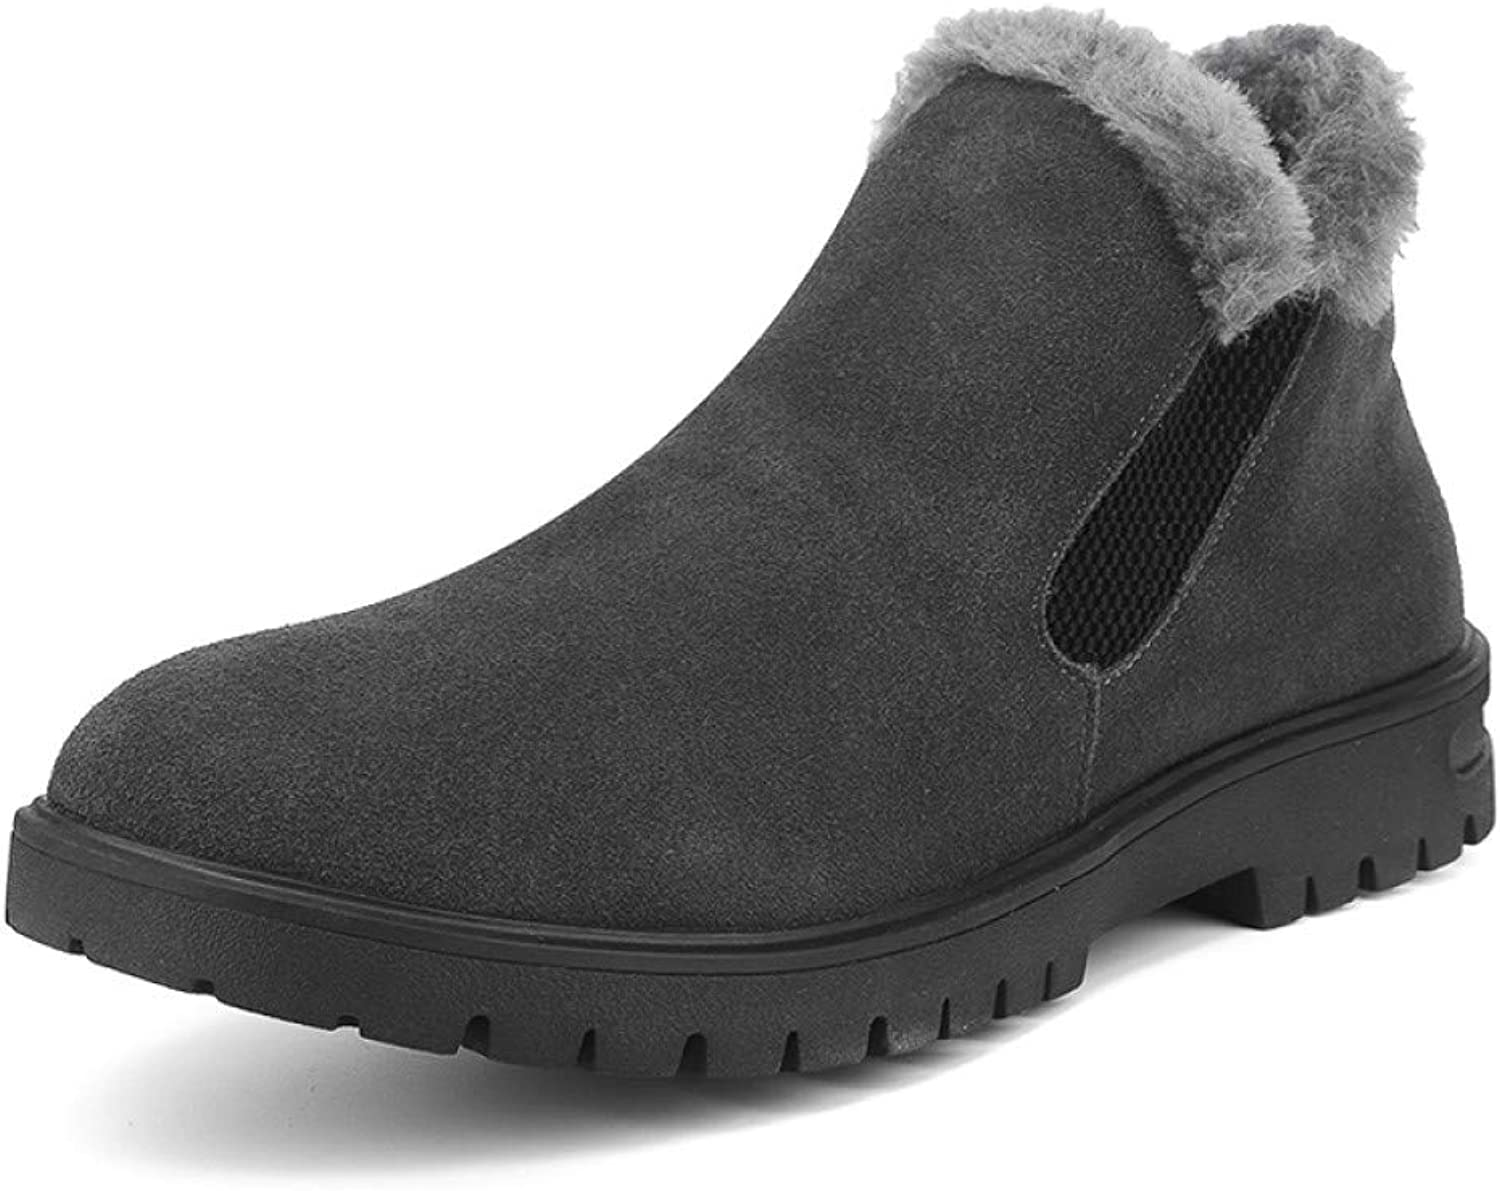 9a2c4520e FHCGMX Snow Boots Men shoes Faux Suede Winter shoes shoes shoes Men Boots  Elastic Slip On Casual Motorcycle Ankle Booties 39-44 92069f